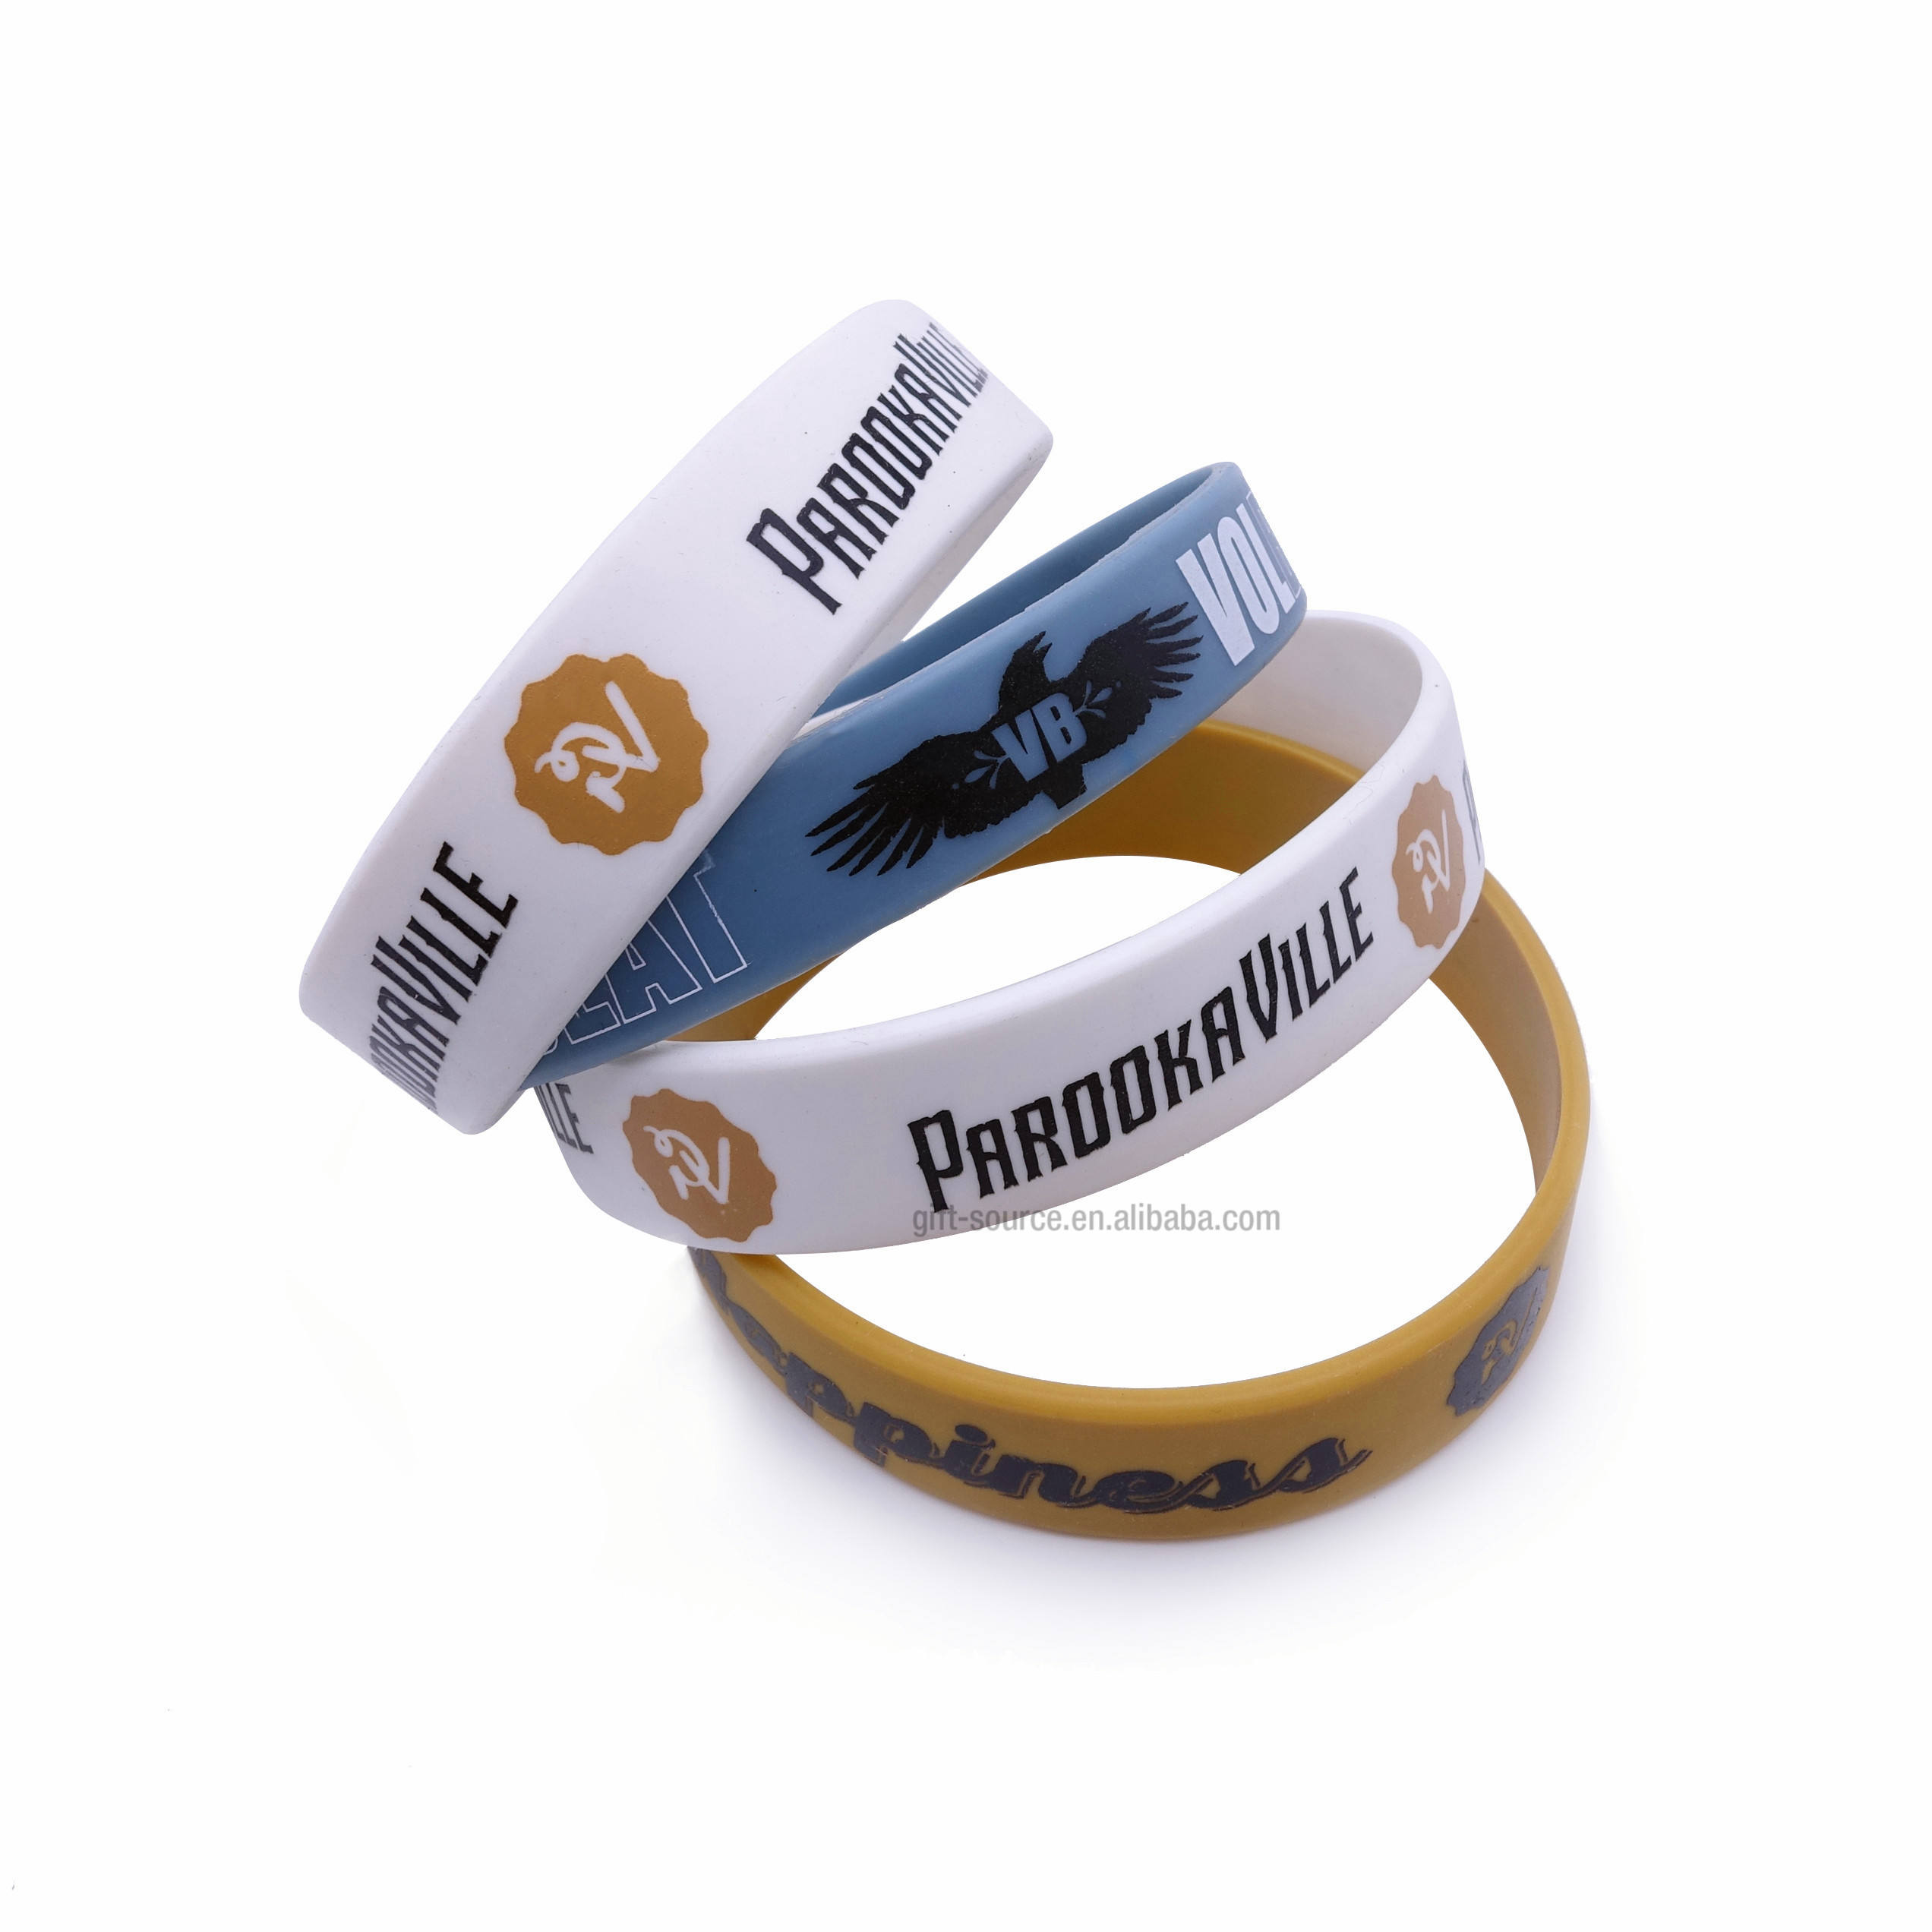 custom Printed silicone wristband for promotion Gifts,Adjustable Silicon Wristband